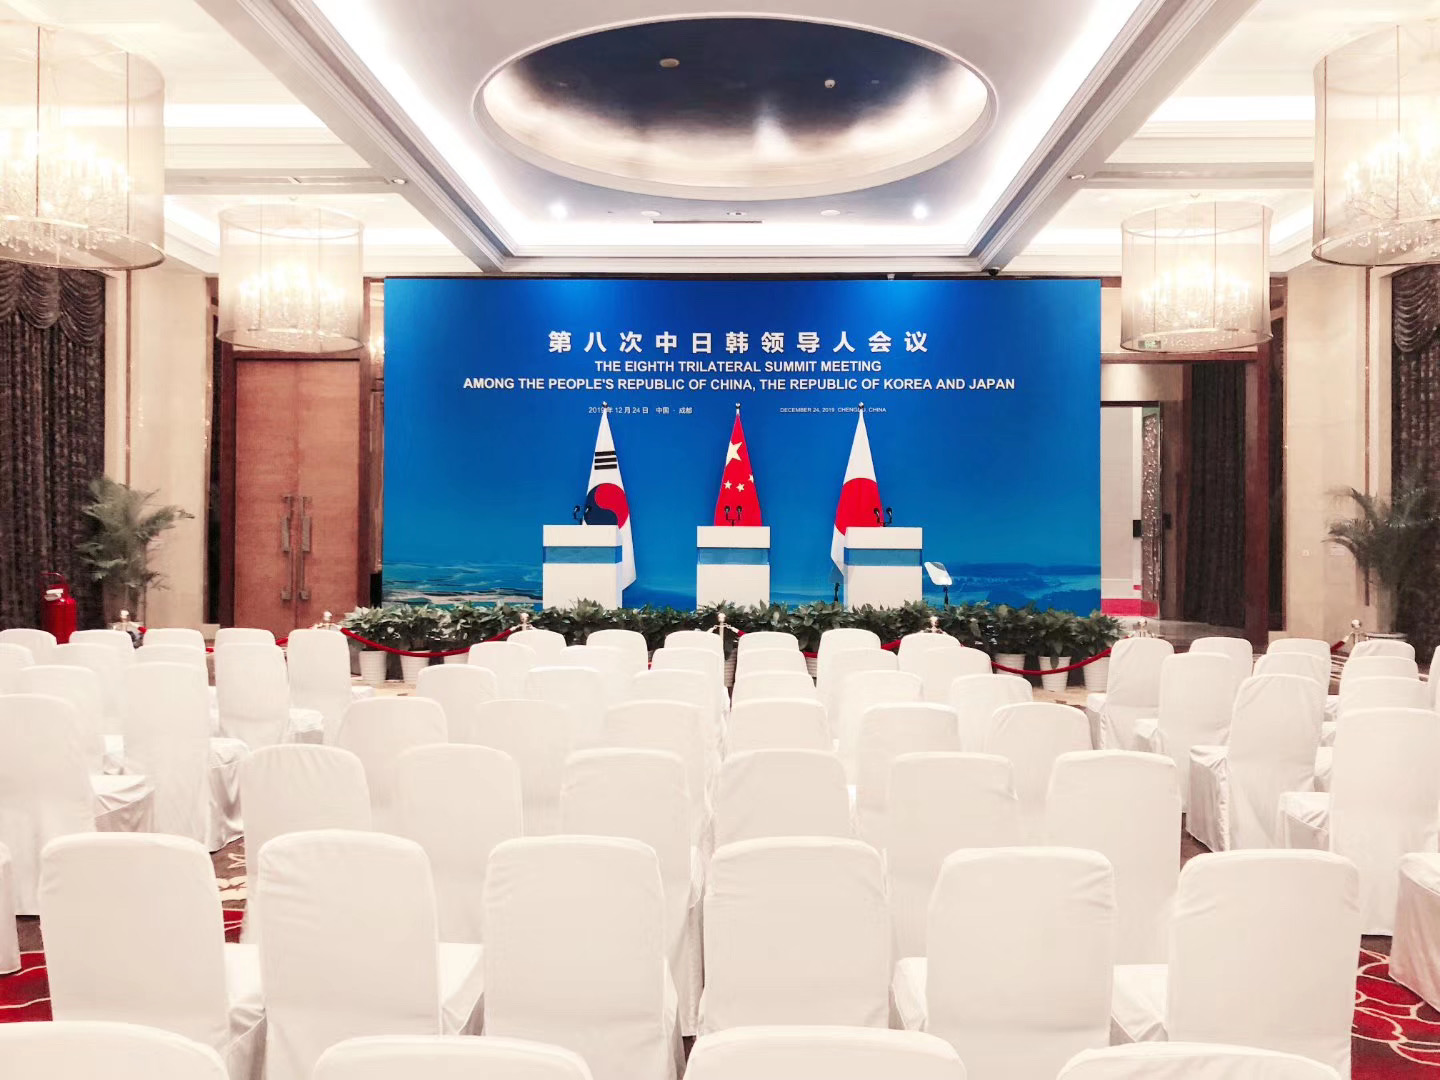 FeiBiXuan in The Eighth Trilateral Summit Meeting Among The People's Republic of China, The Republic of Korea and Japan